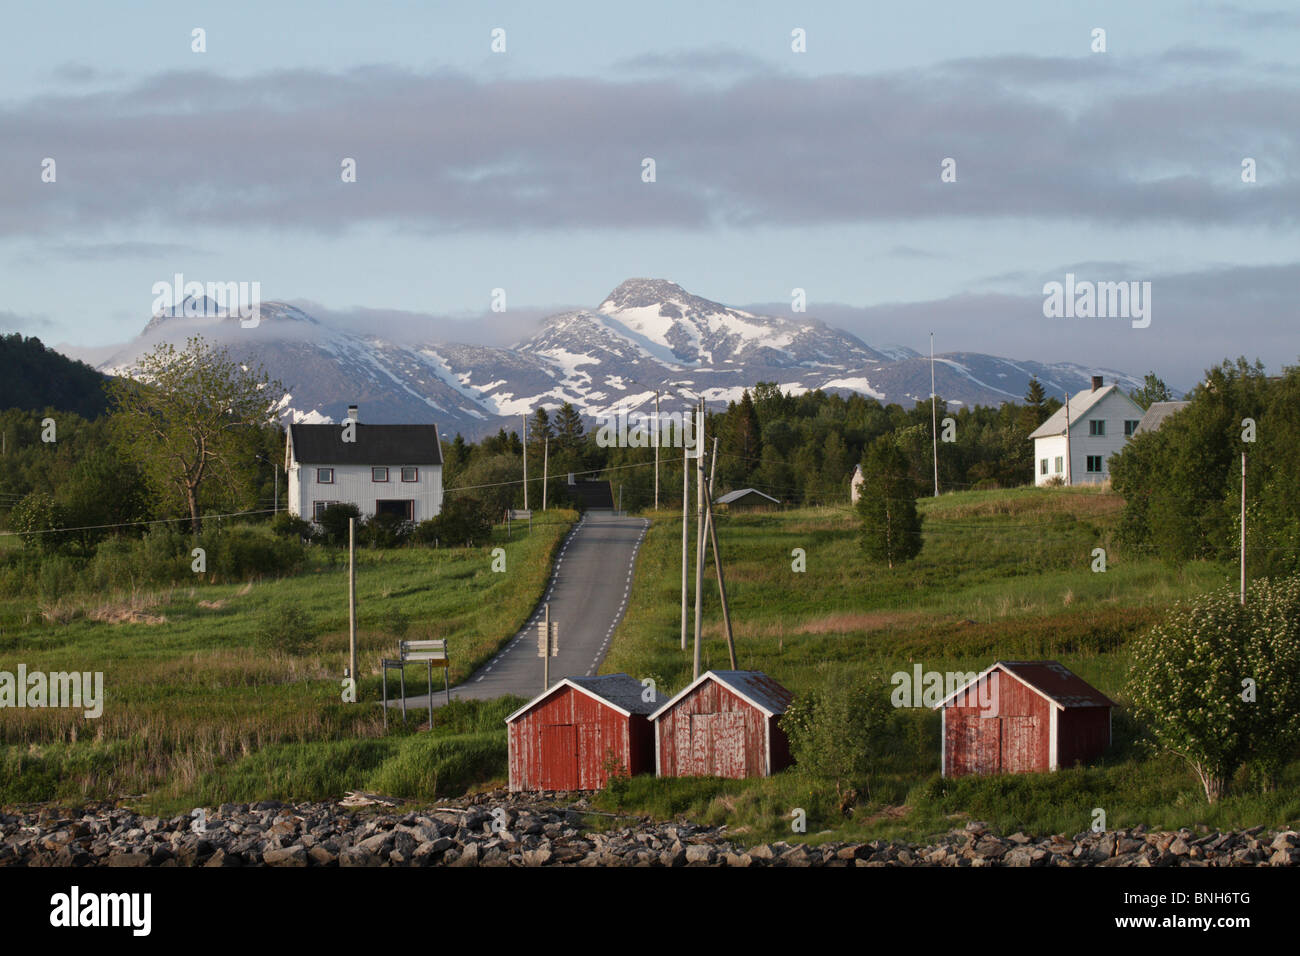 Fisher huts (rorbus) at the harbour of Styrkesnes, Nordland Fylke, Norway. Snow-covered mountains are in the background. Stock Photo